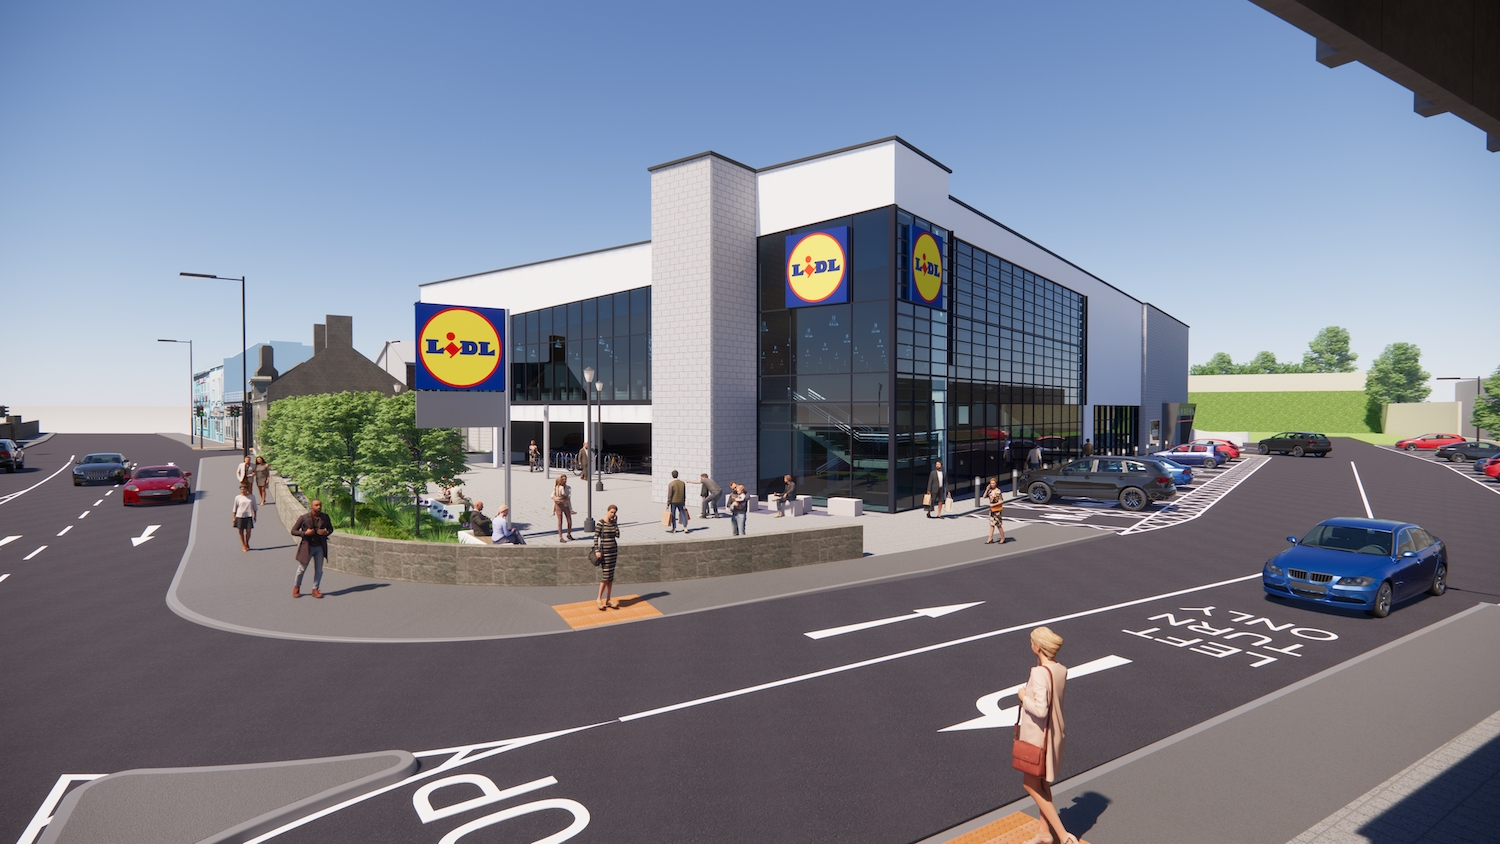 Lidl Dock Road Store would create 30 new local permanent jobs as well as many more during the construction phase.